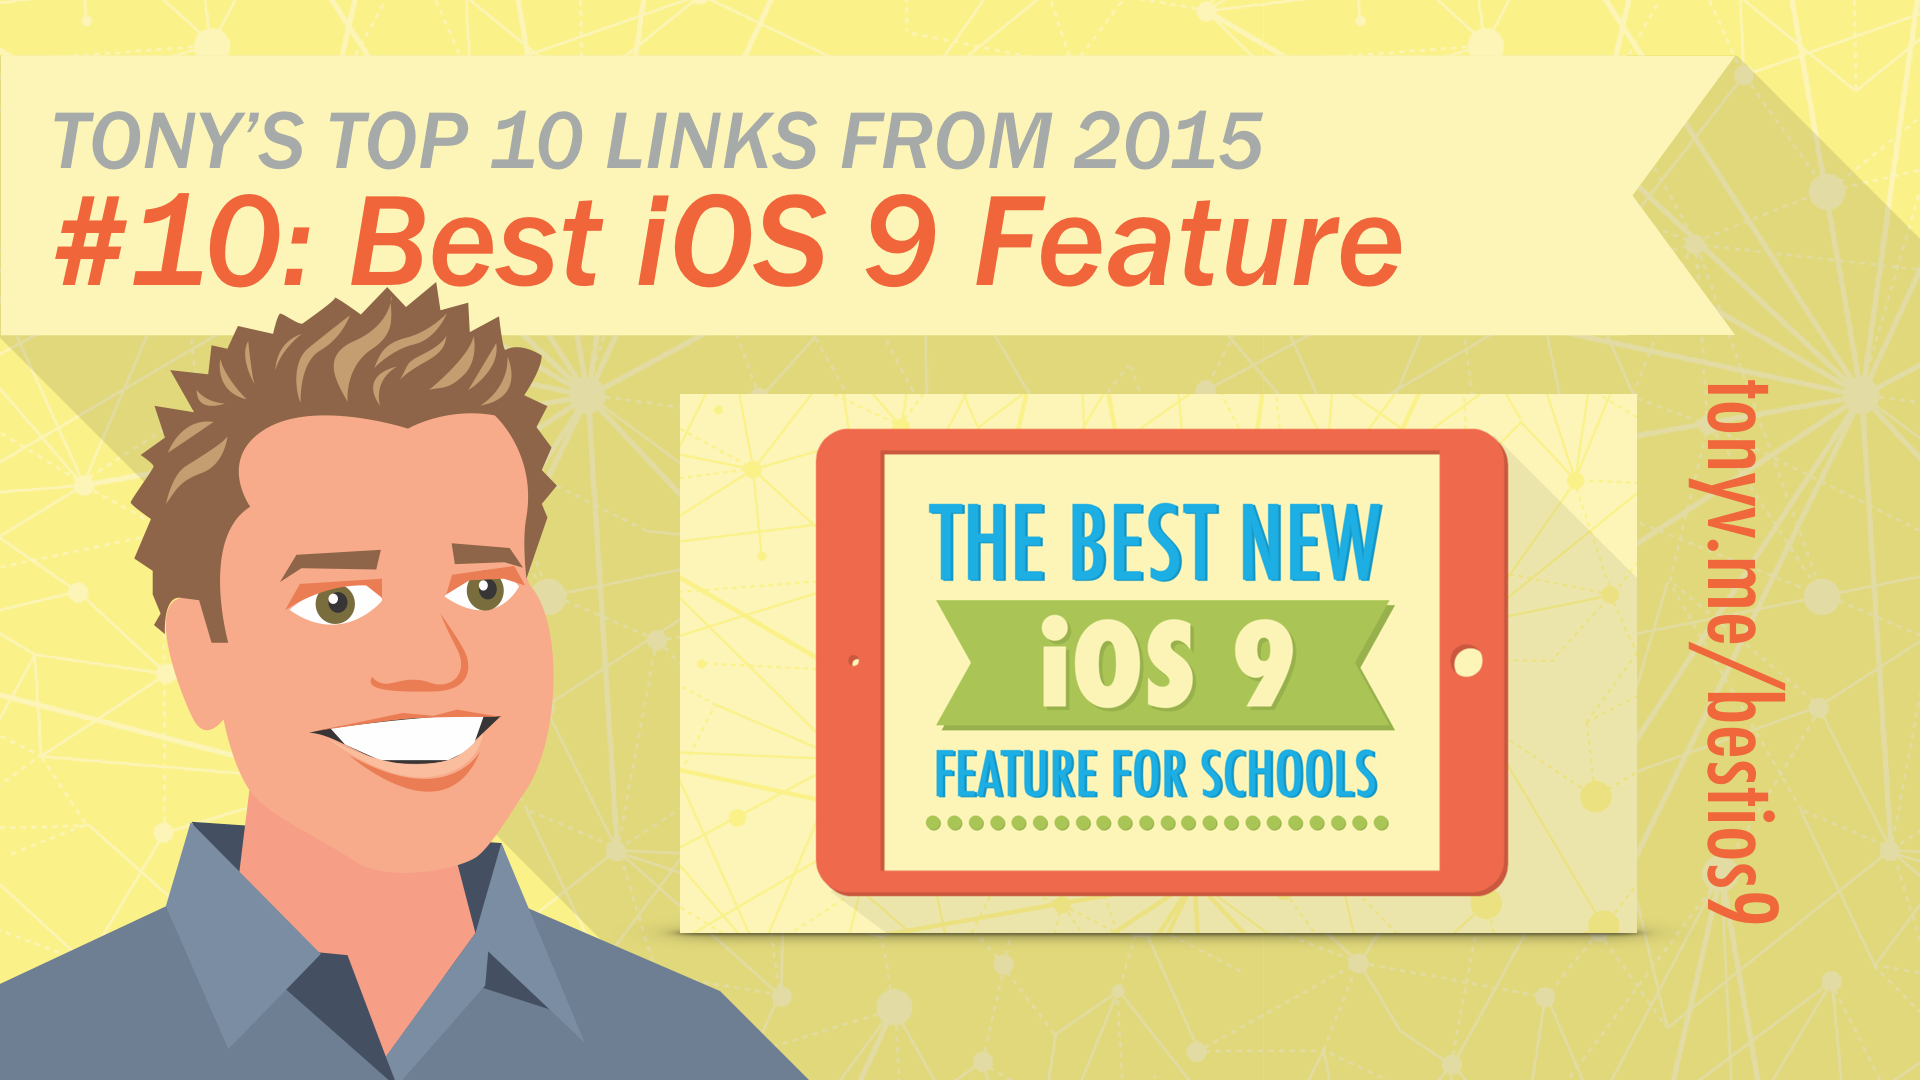 #10: BEST IOS 9 FEATURE